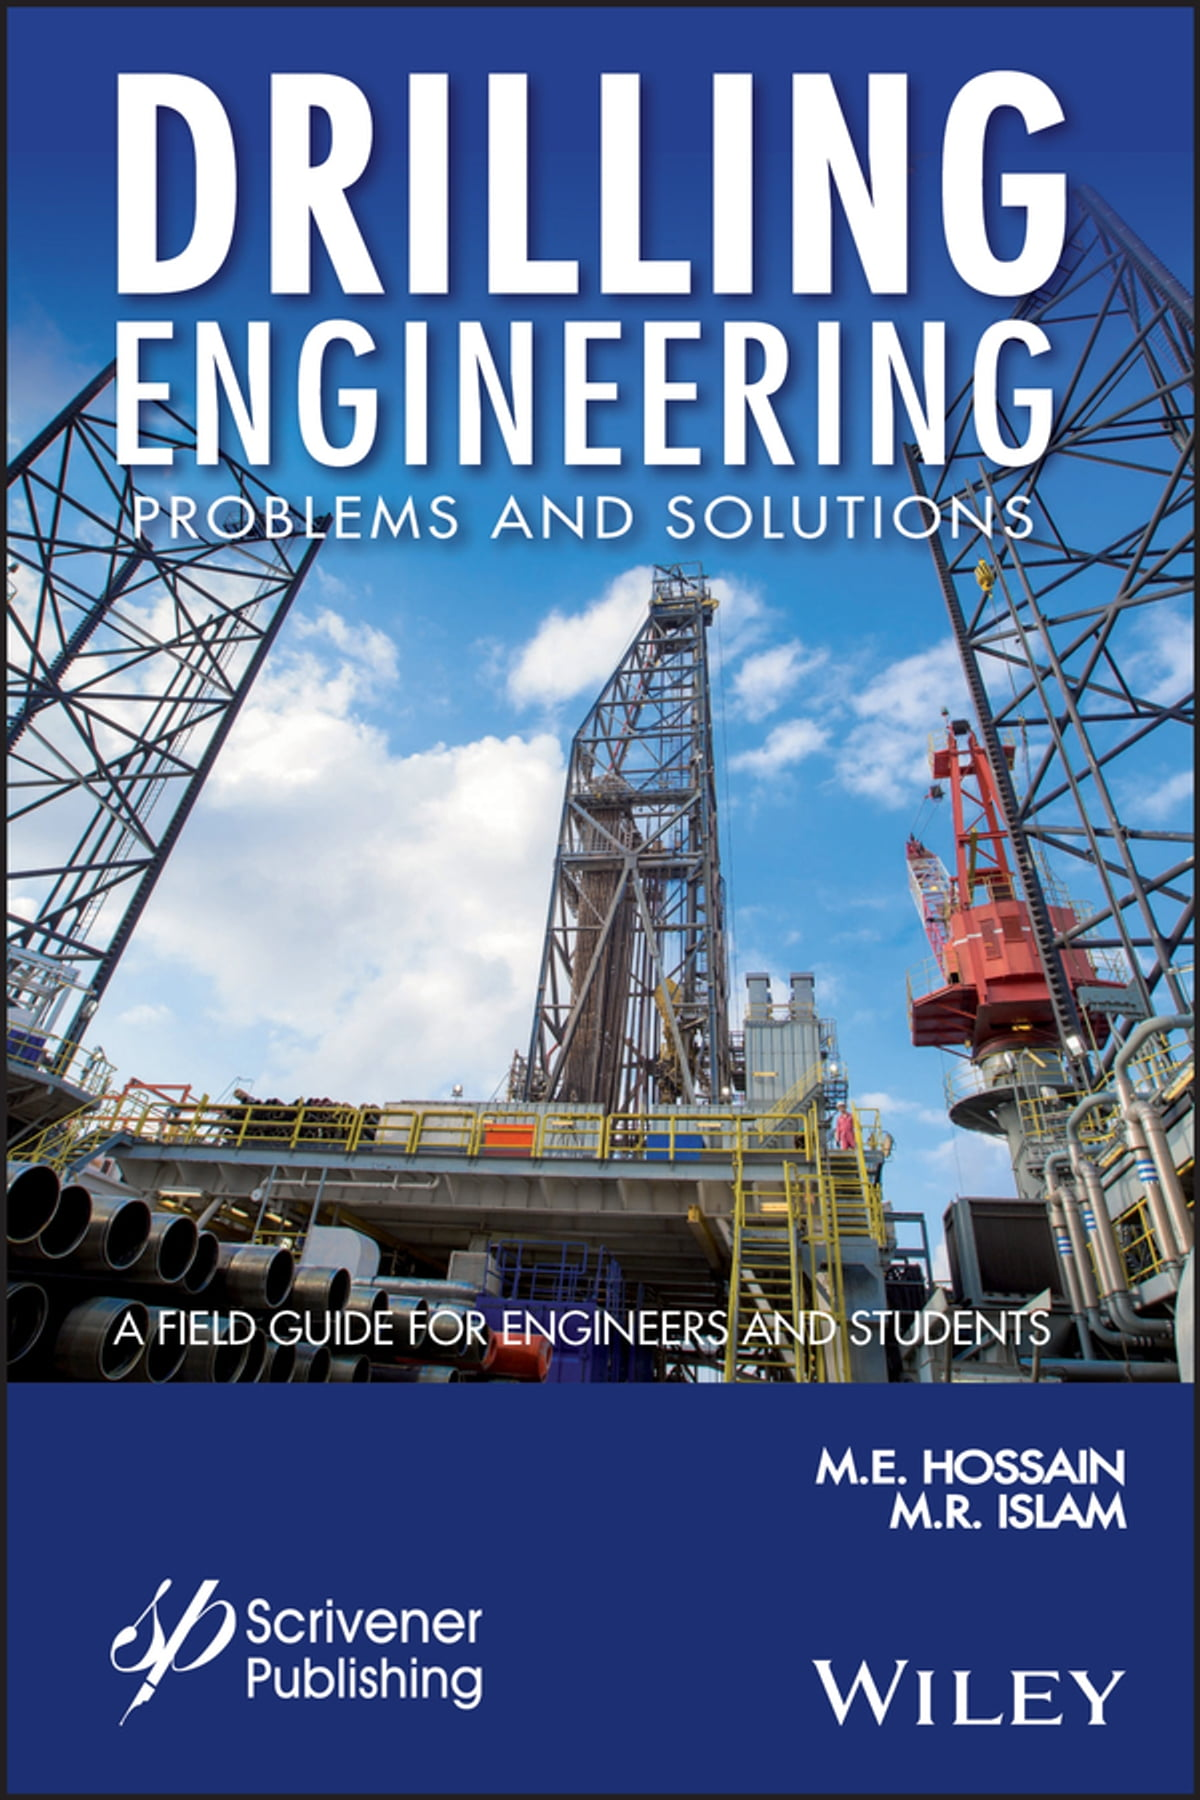 Drilling Engineering Problems and Solutions eBook by M. E. Hossain -  9781118998649   Rakuten Kobo